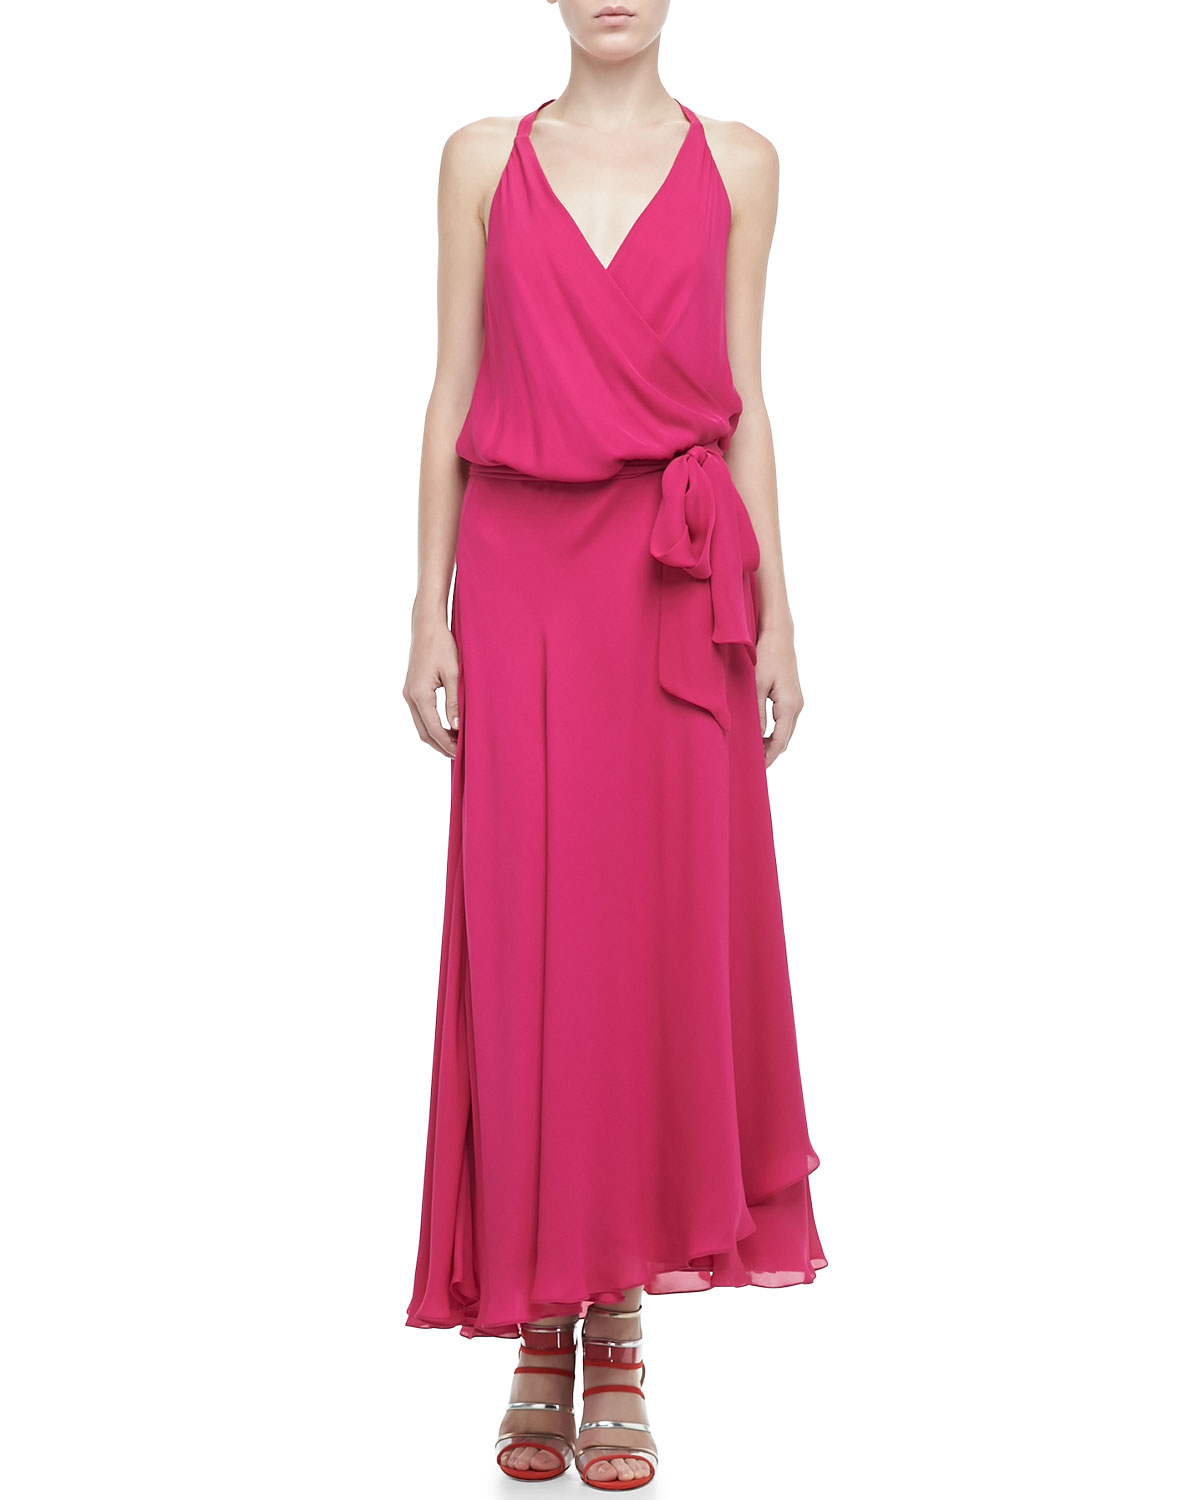 Haute Hippie Halter Faux-Wrap Maxi Dress in Fuchsia